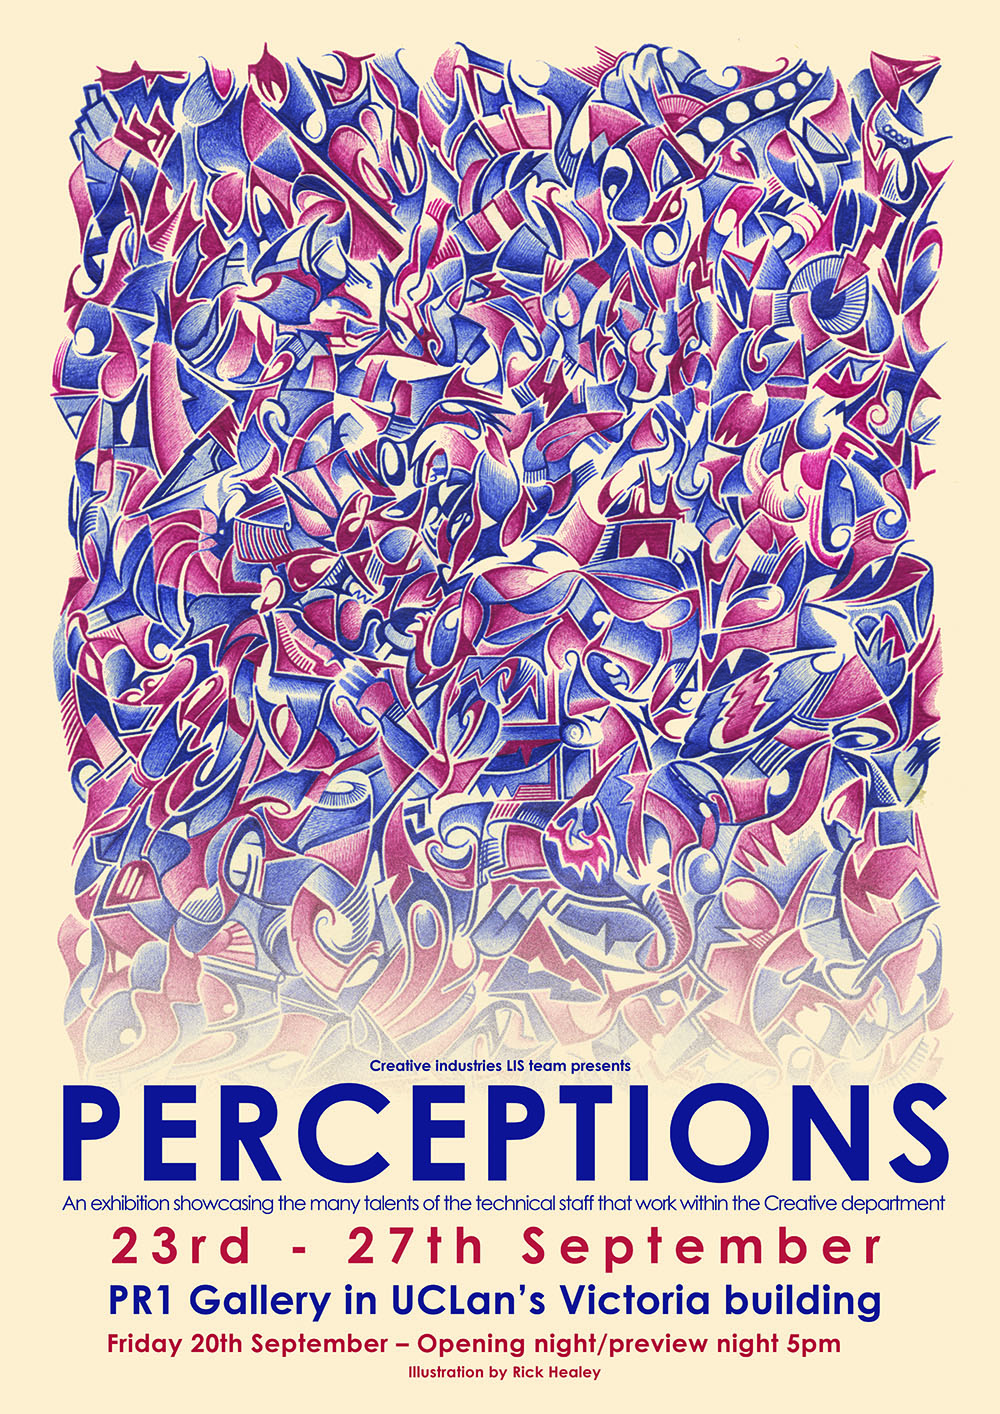 Perceptions an exhibition at the PR1 Gallery